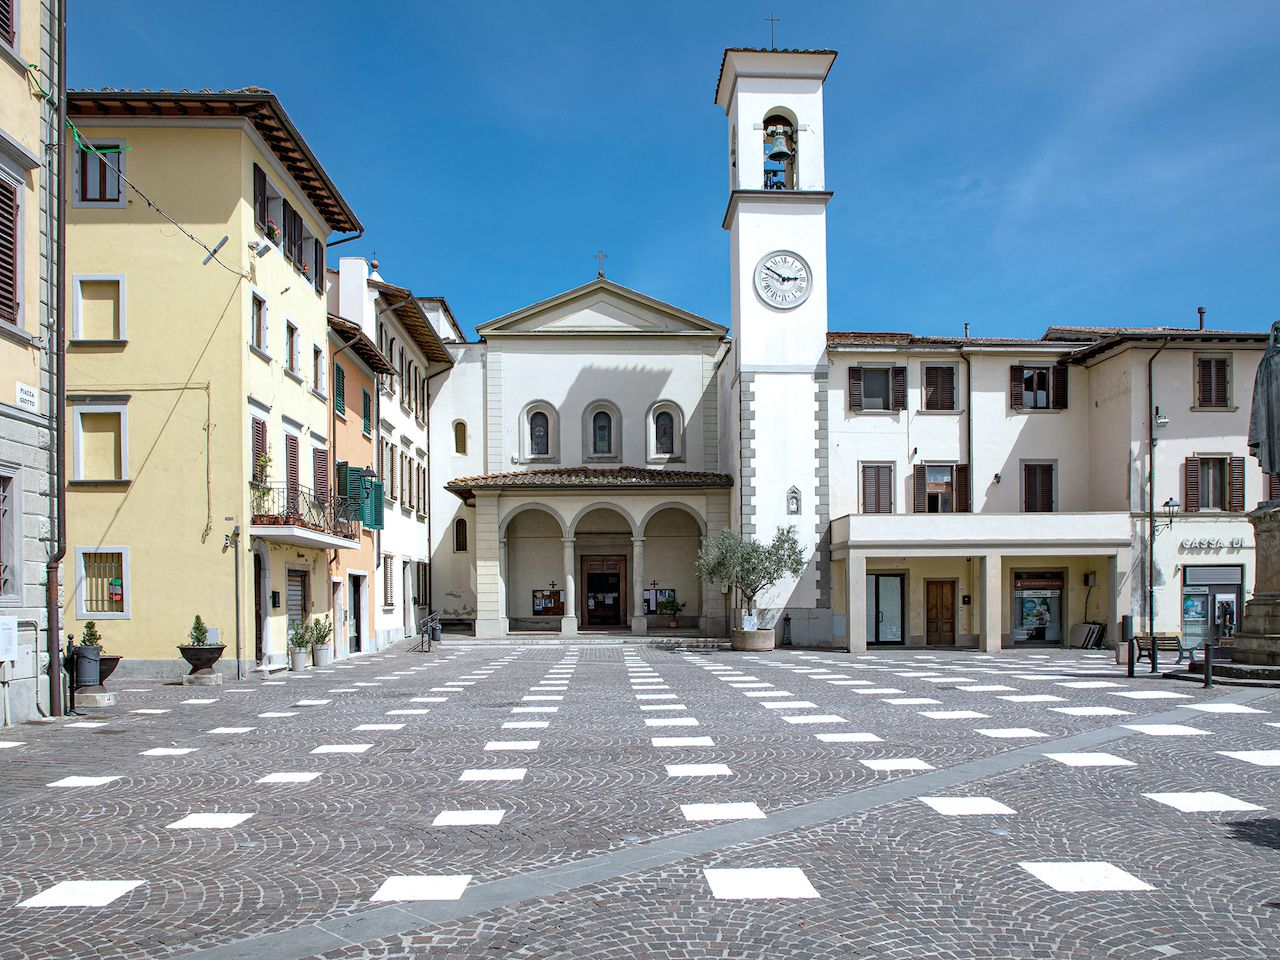 Art installation in Piazza Giotto in Vicchio Italy